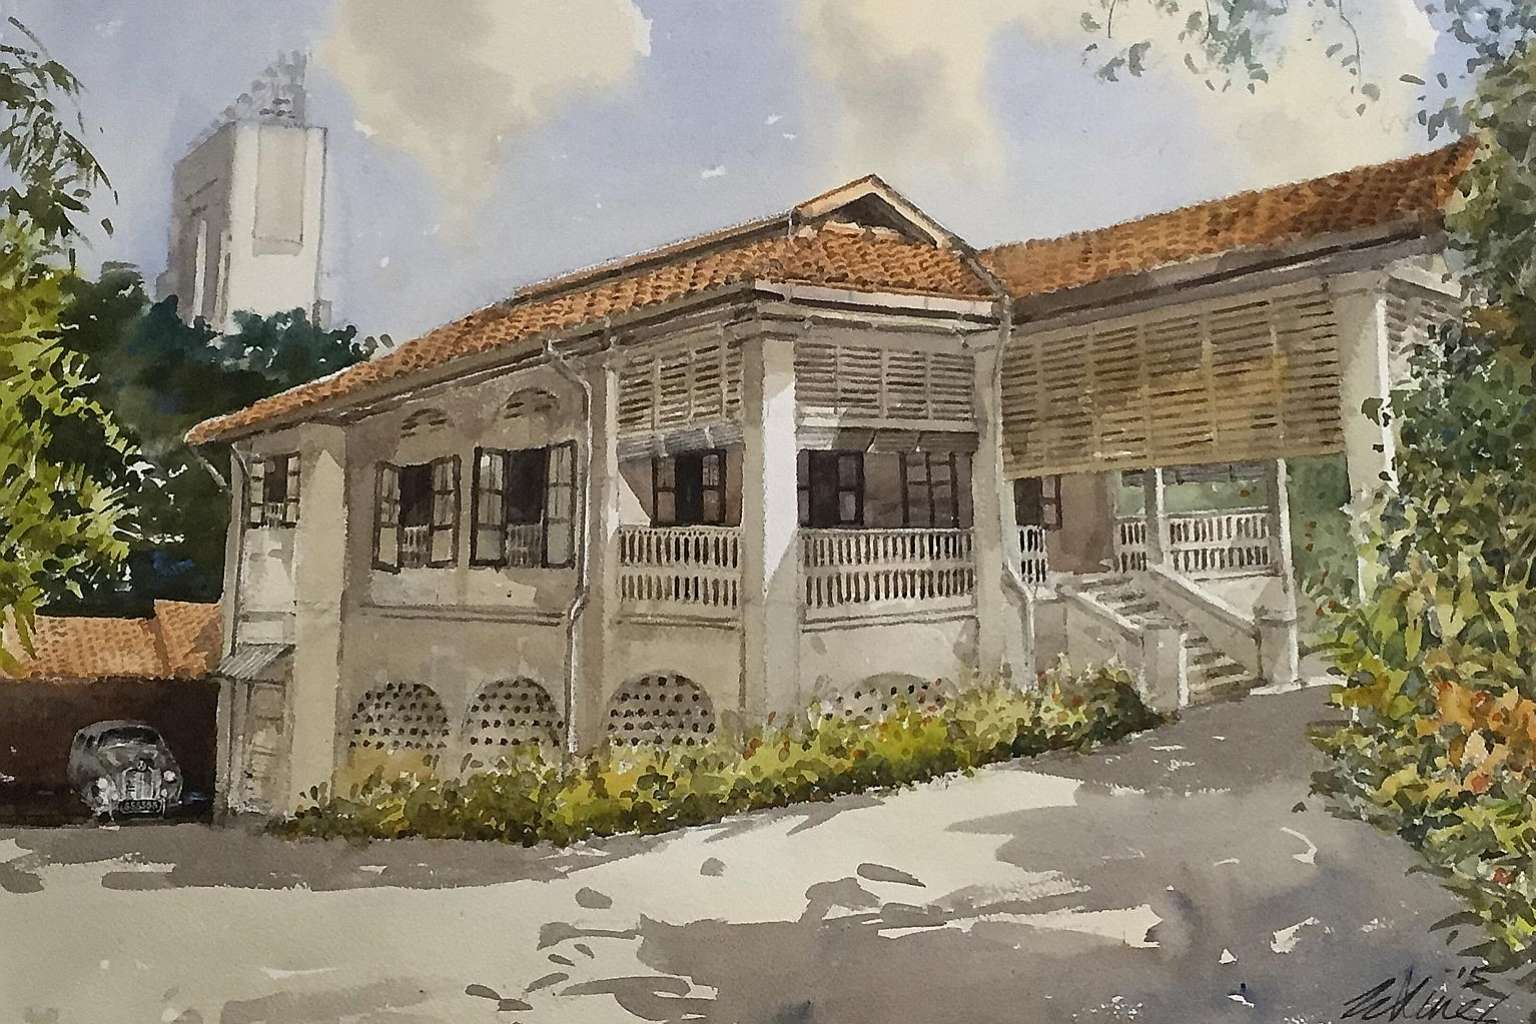 Singapore artist Ong Kim Seng's painting of the house at 38, Oxley Road, featuring it in its original condition in the 1950s.